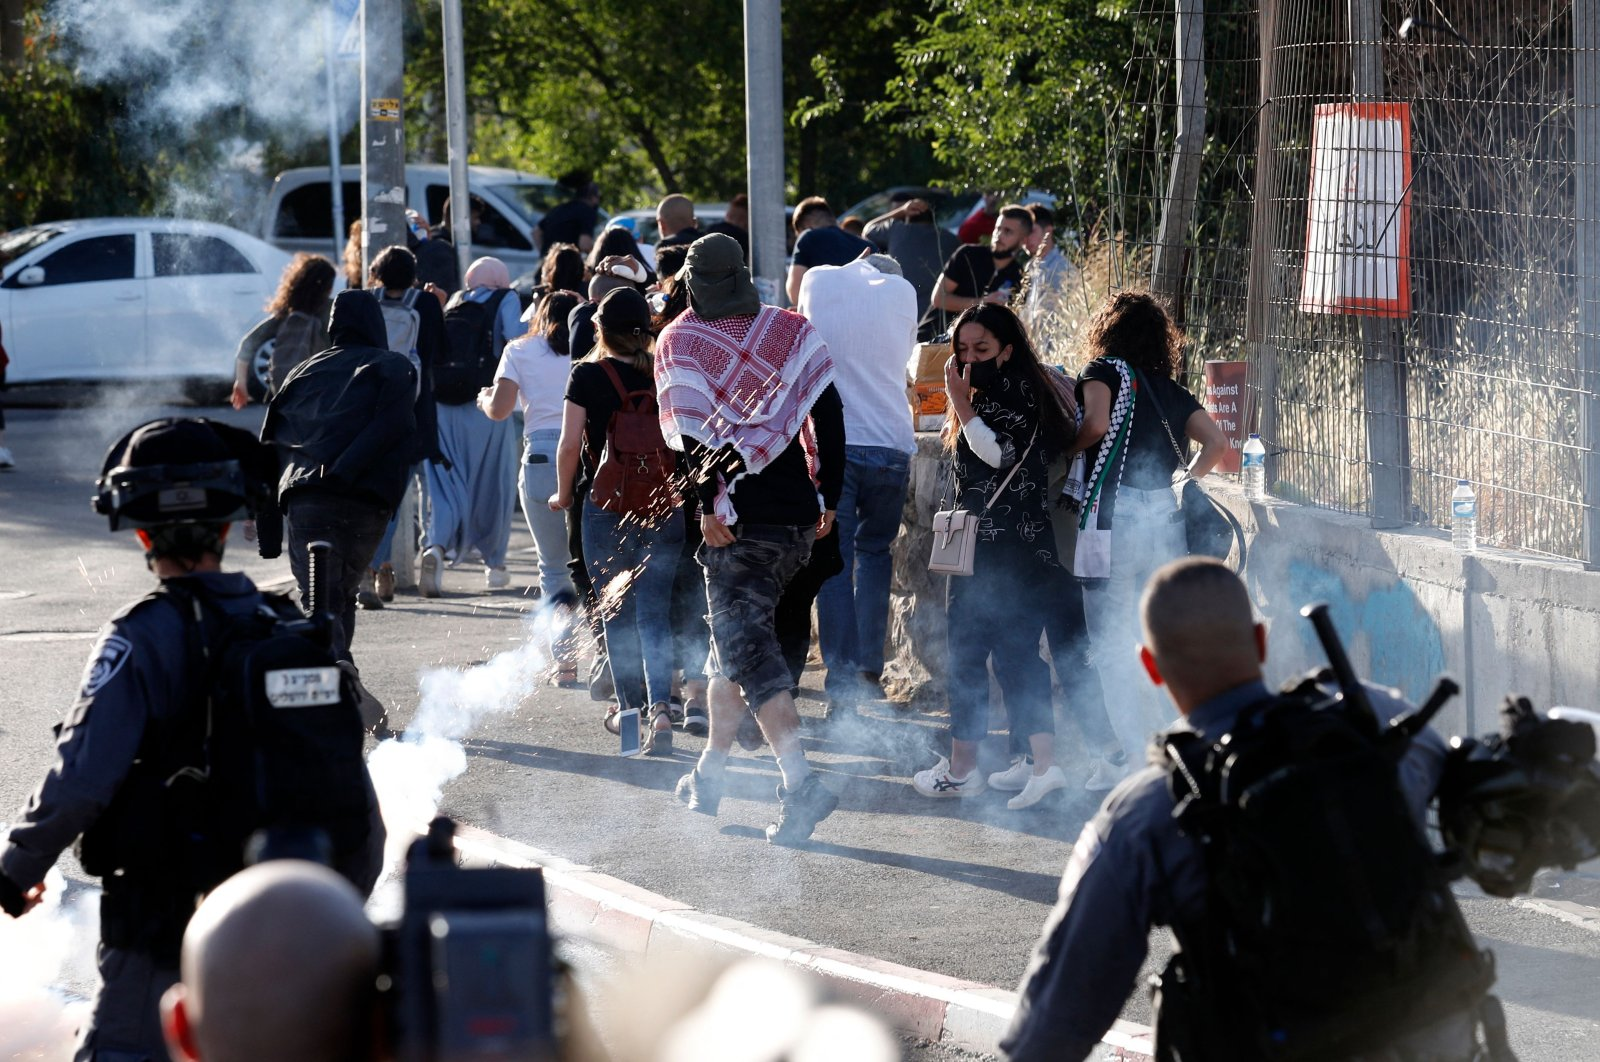 Israeli security forces fire tear gas toward Palestinian protesters and activists near an Israeli Police checkpoint at the entrance of the Sheikh Jarrah neighbourhood in East Jerusalem, occupied Palestine, May 29, 2021. (AFP Photo)